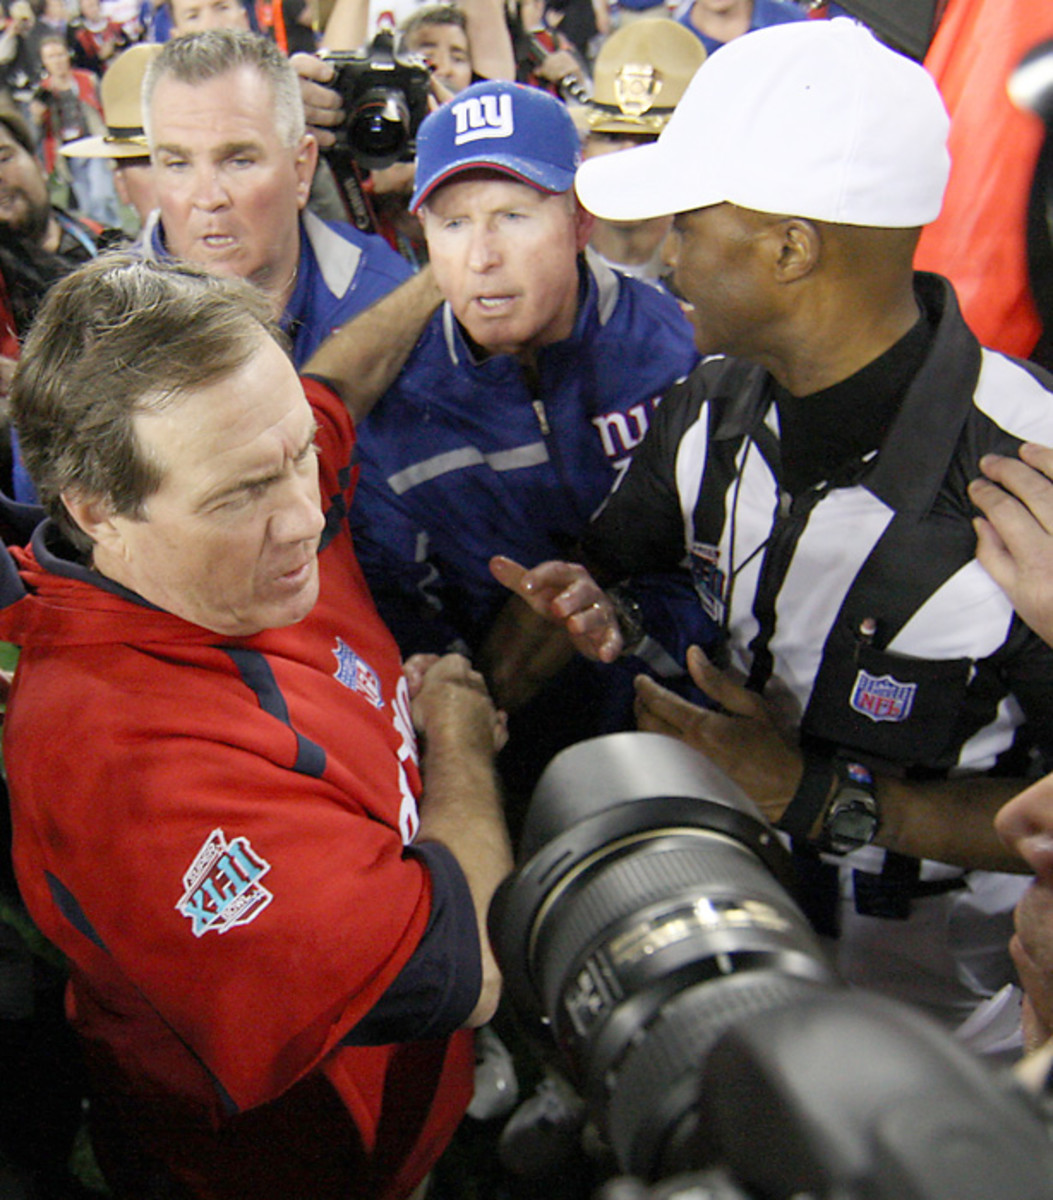 Bill Belichick and Tom Coughlin